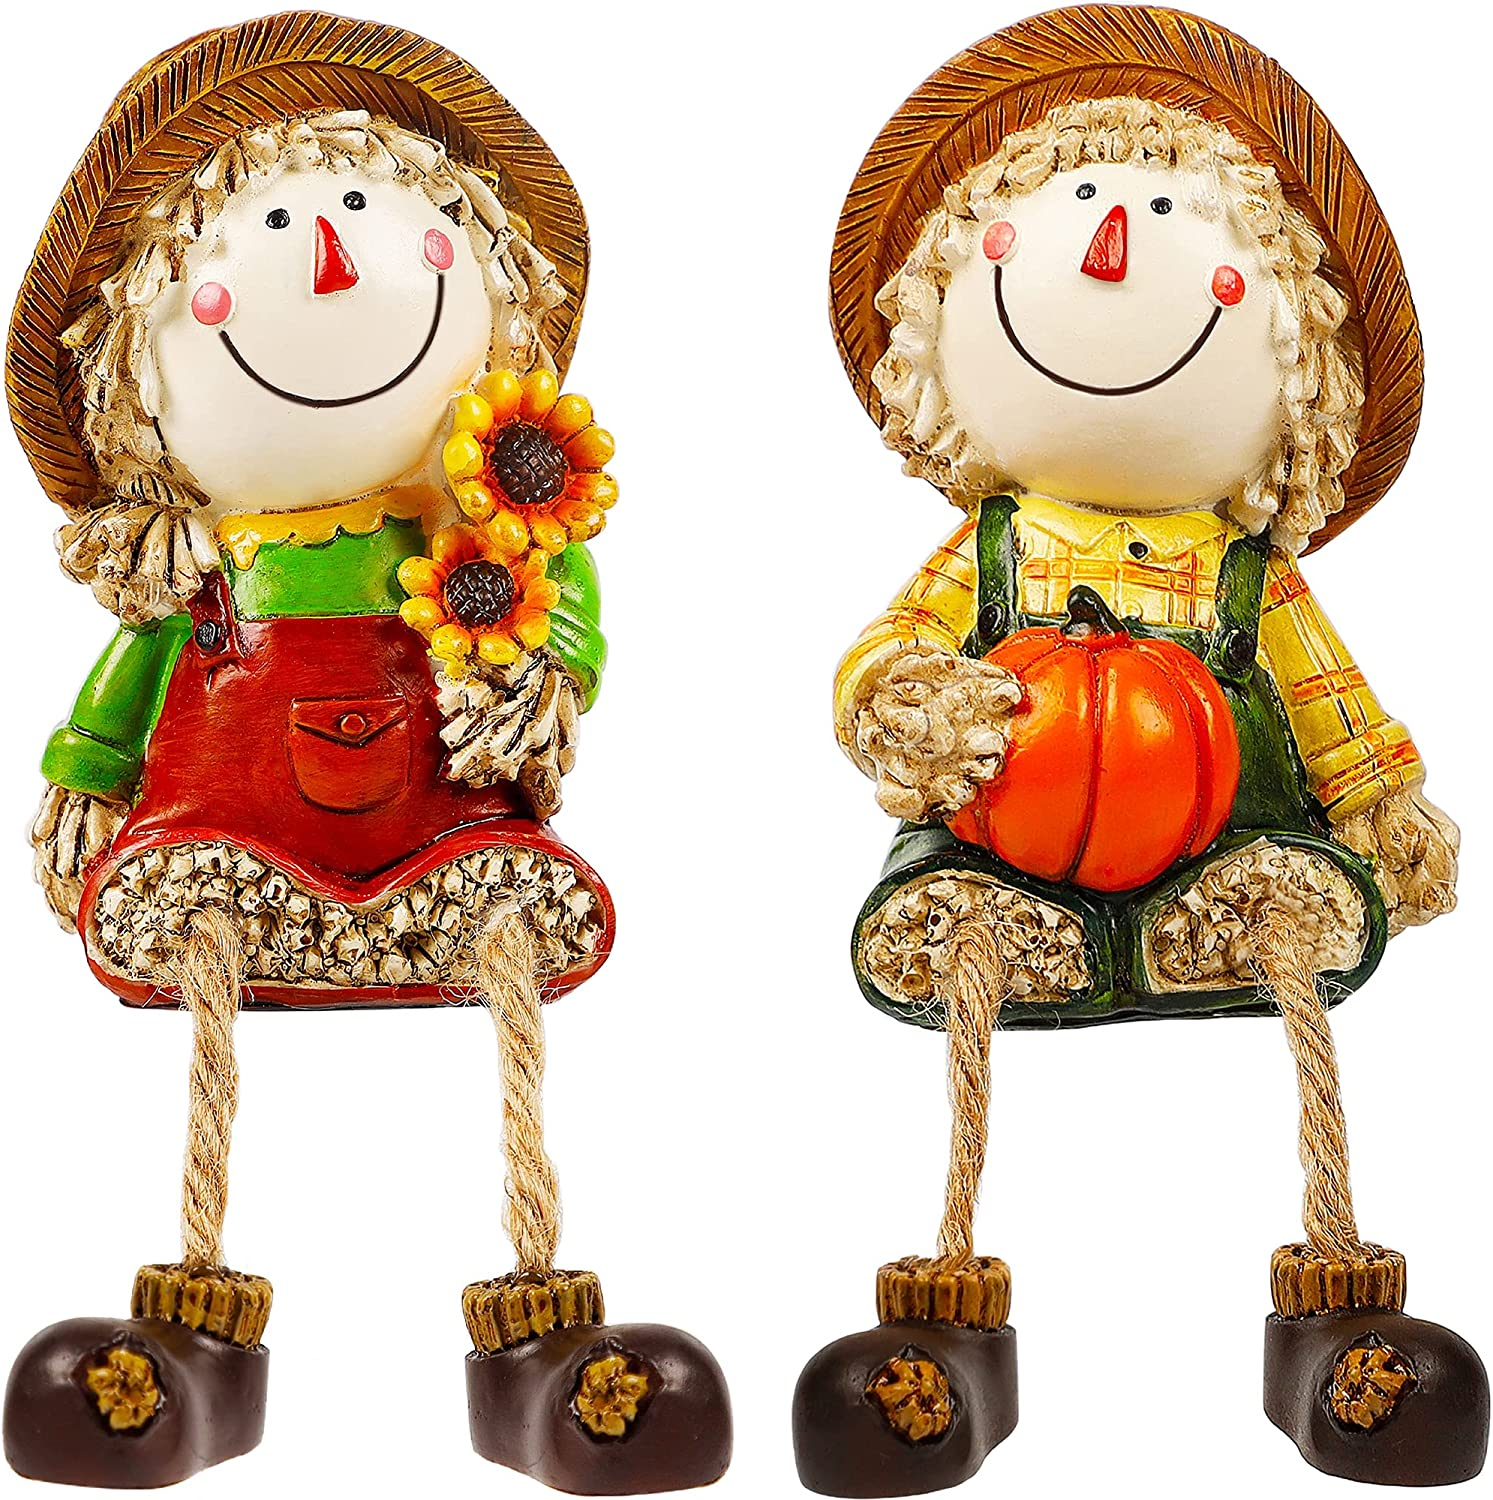 Lulu Home Fall Figurines, Set of 2 Resin Scarecrow Shelf Sitters with Dangling Legs, Fruit Harvest Sculpture for Window Sill Kitchen Tabletop Autumn Home Decoration